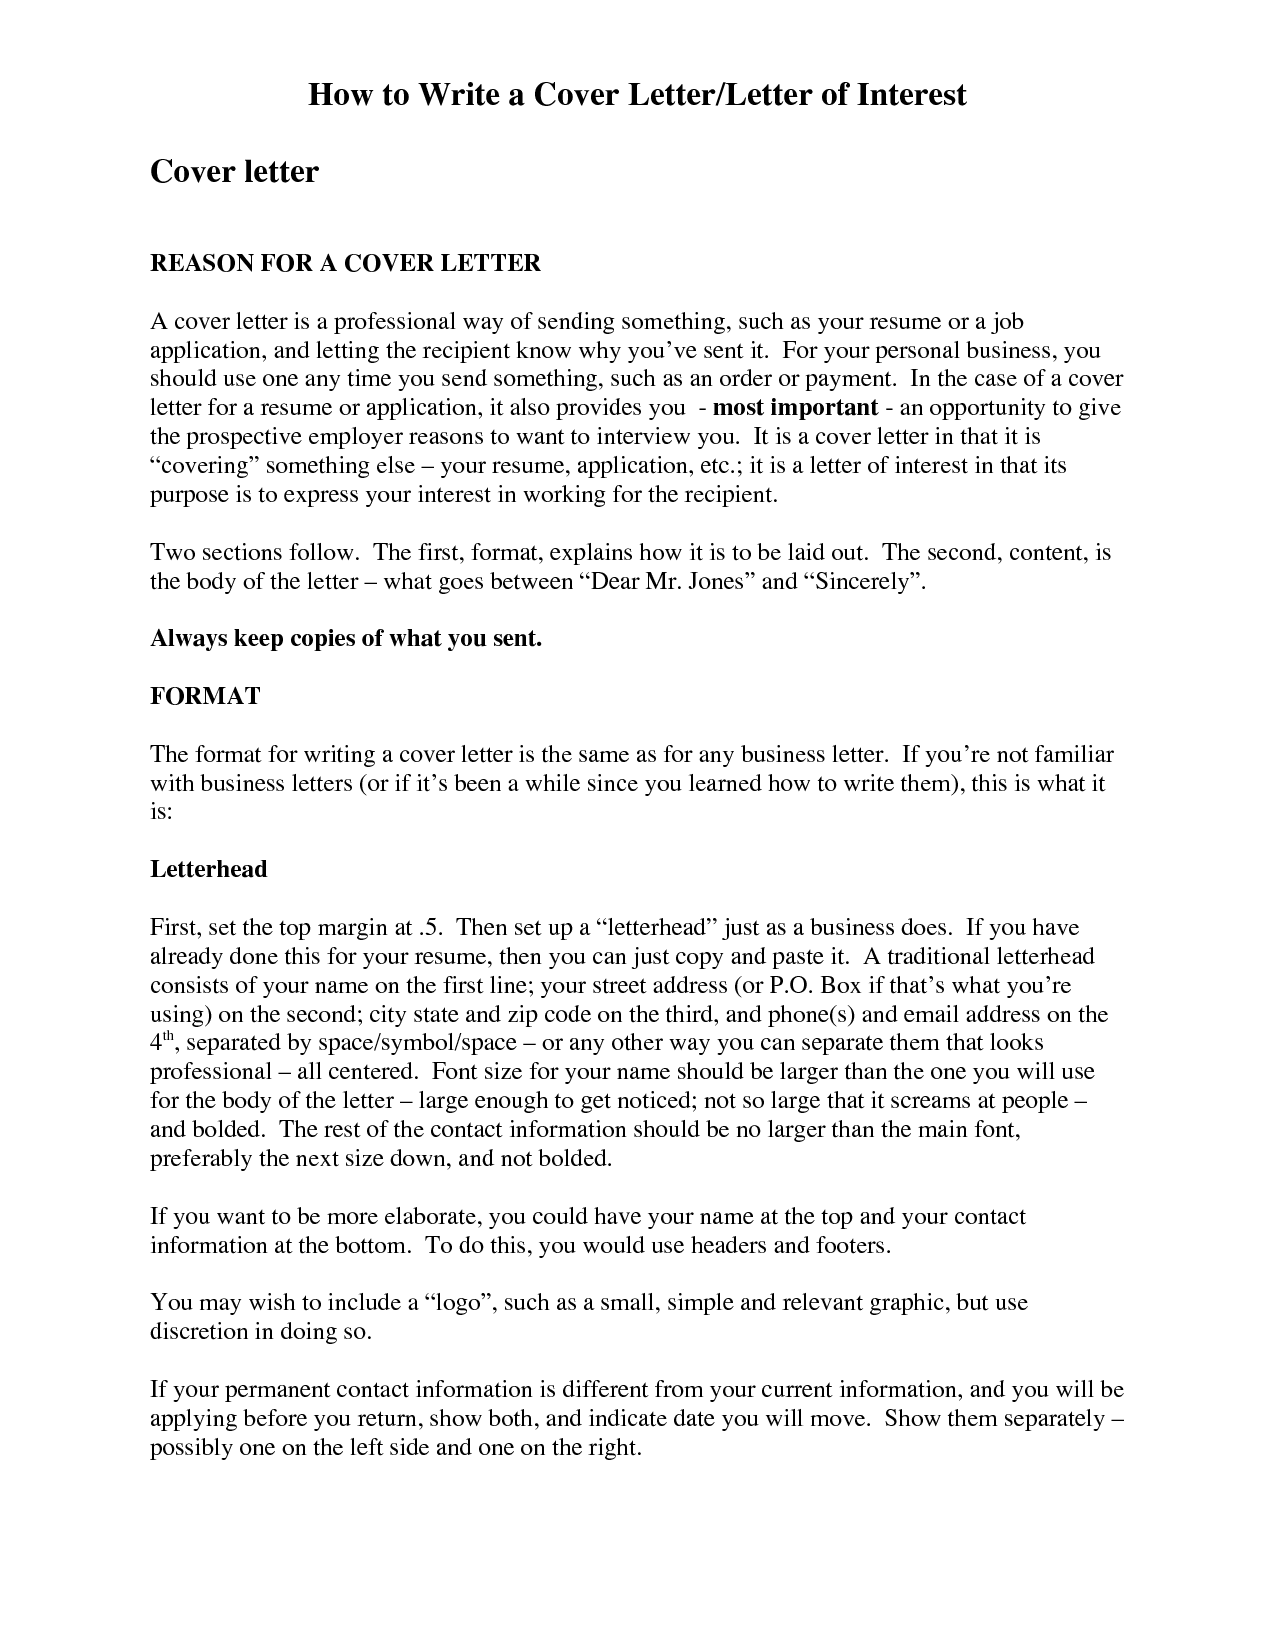 How to write a cover letter of interest example for a job for How to prepare a covering letter